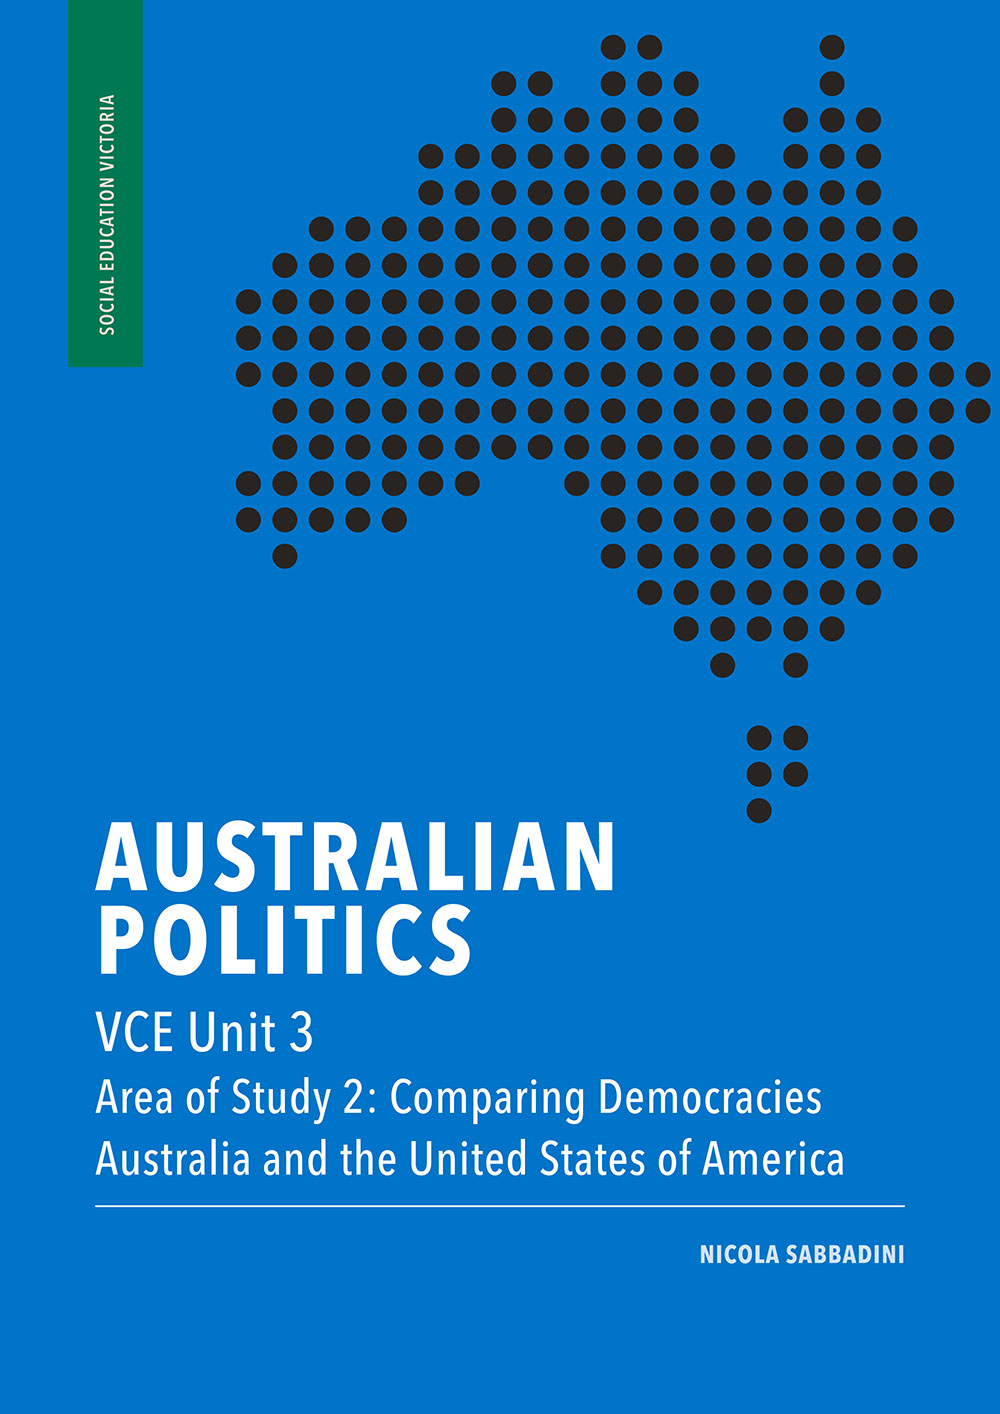 Australian Politics VCE Unit 3, Area of Study 2